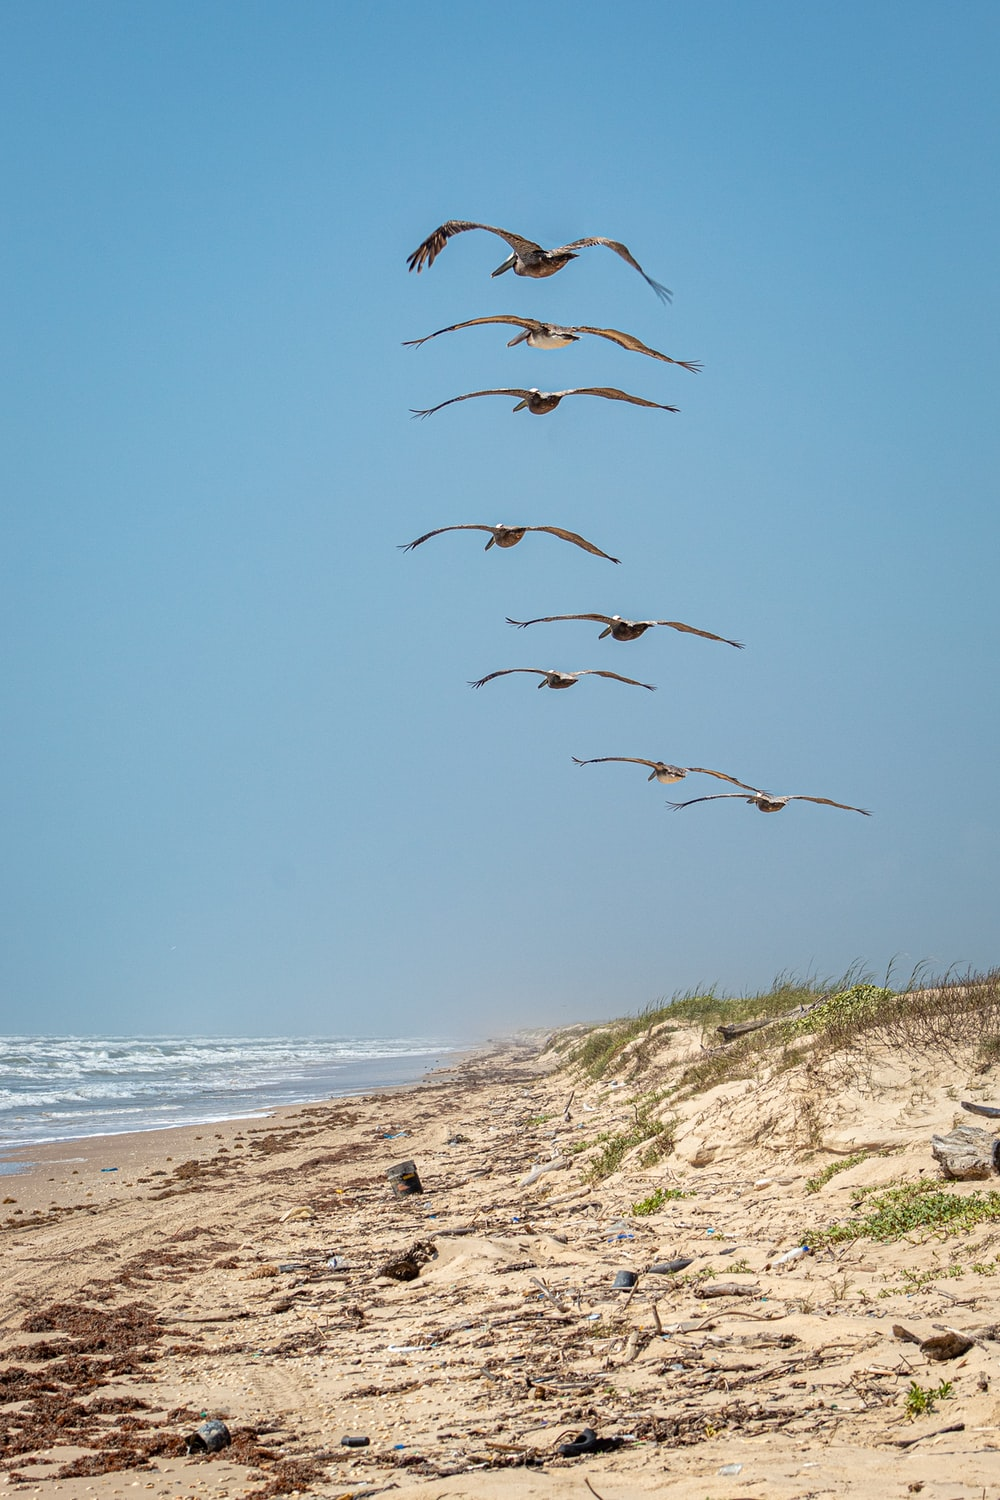 brown seagulls flying under calm sea